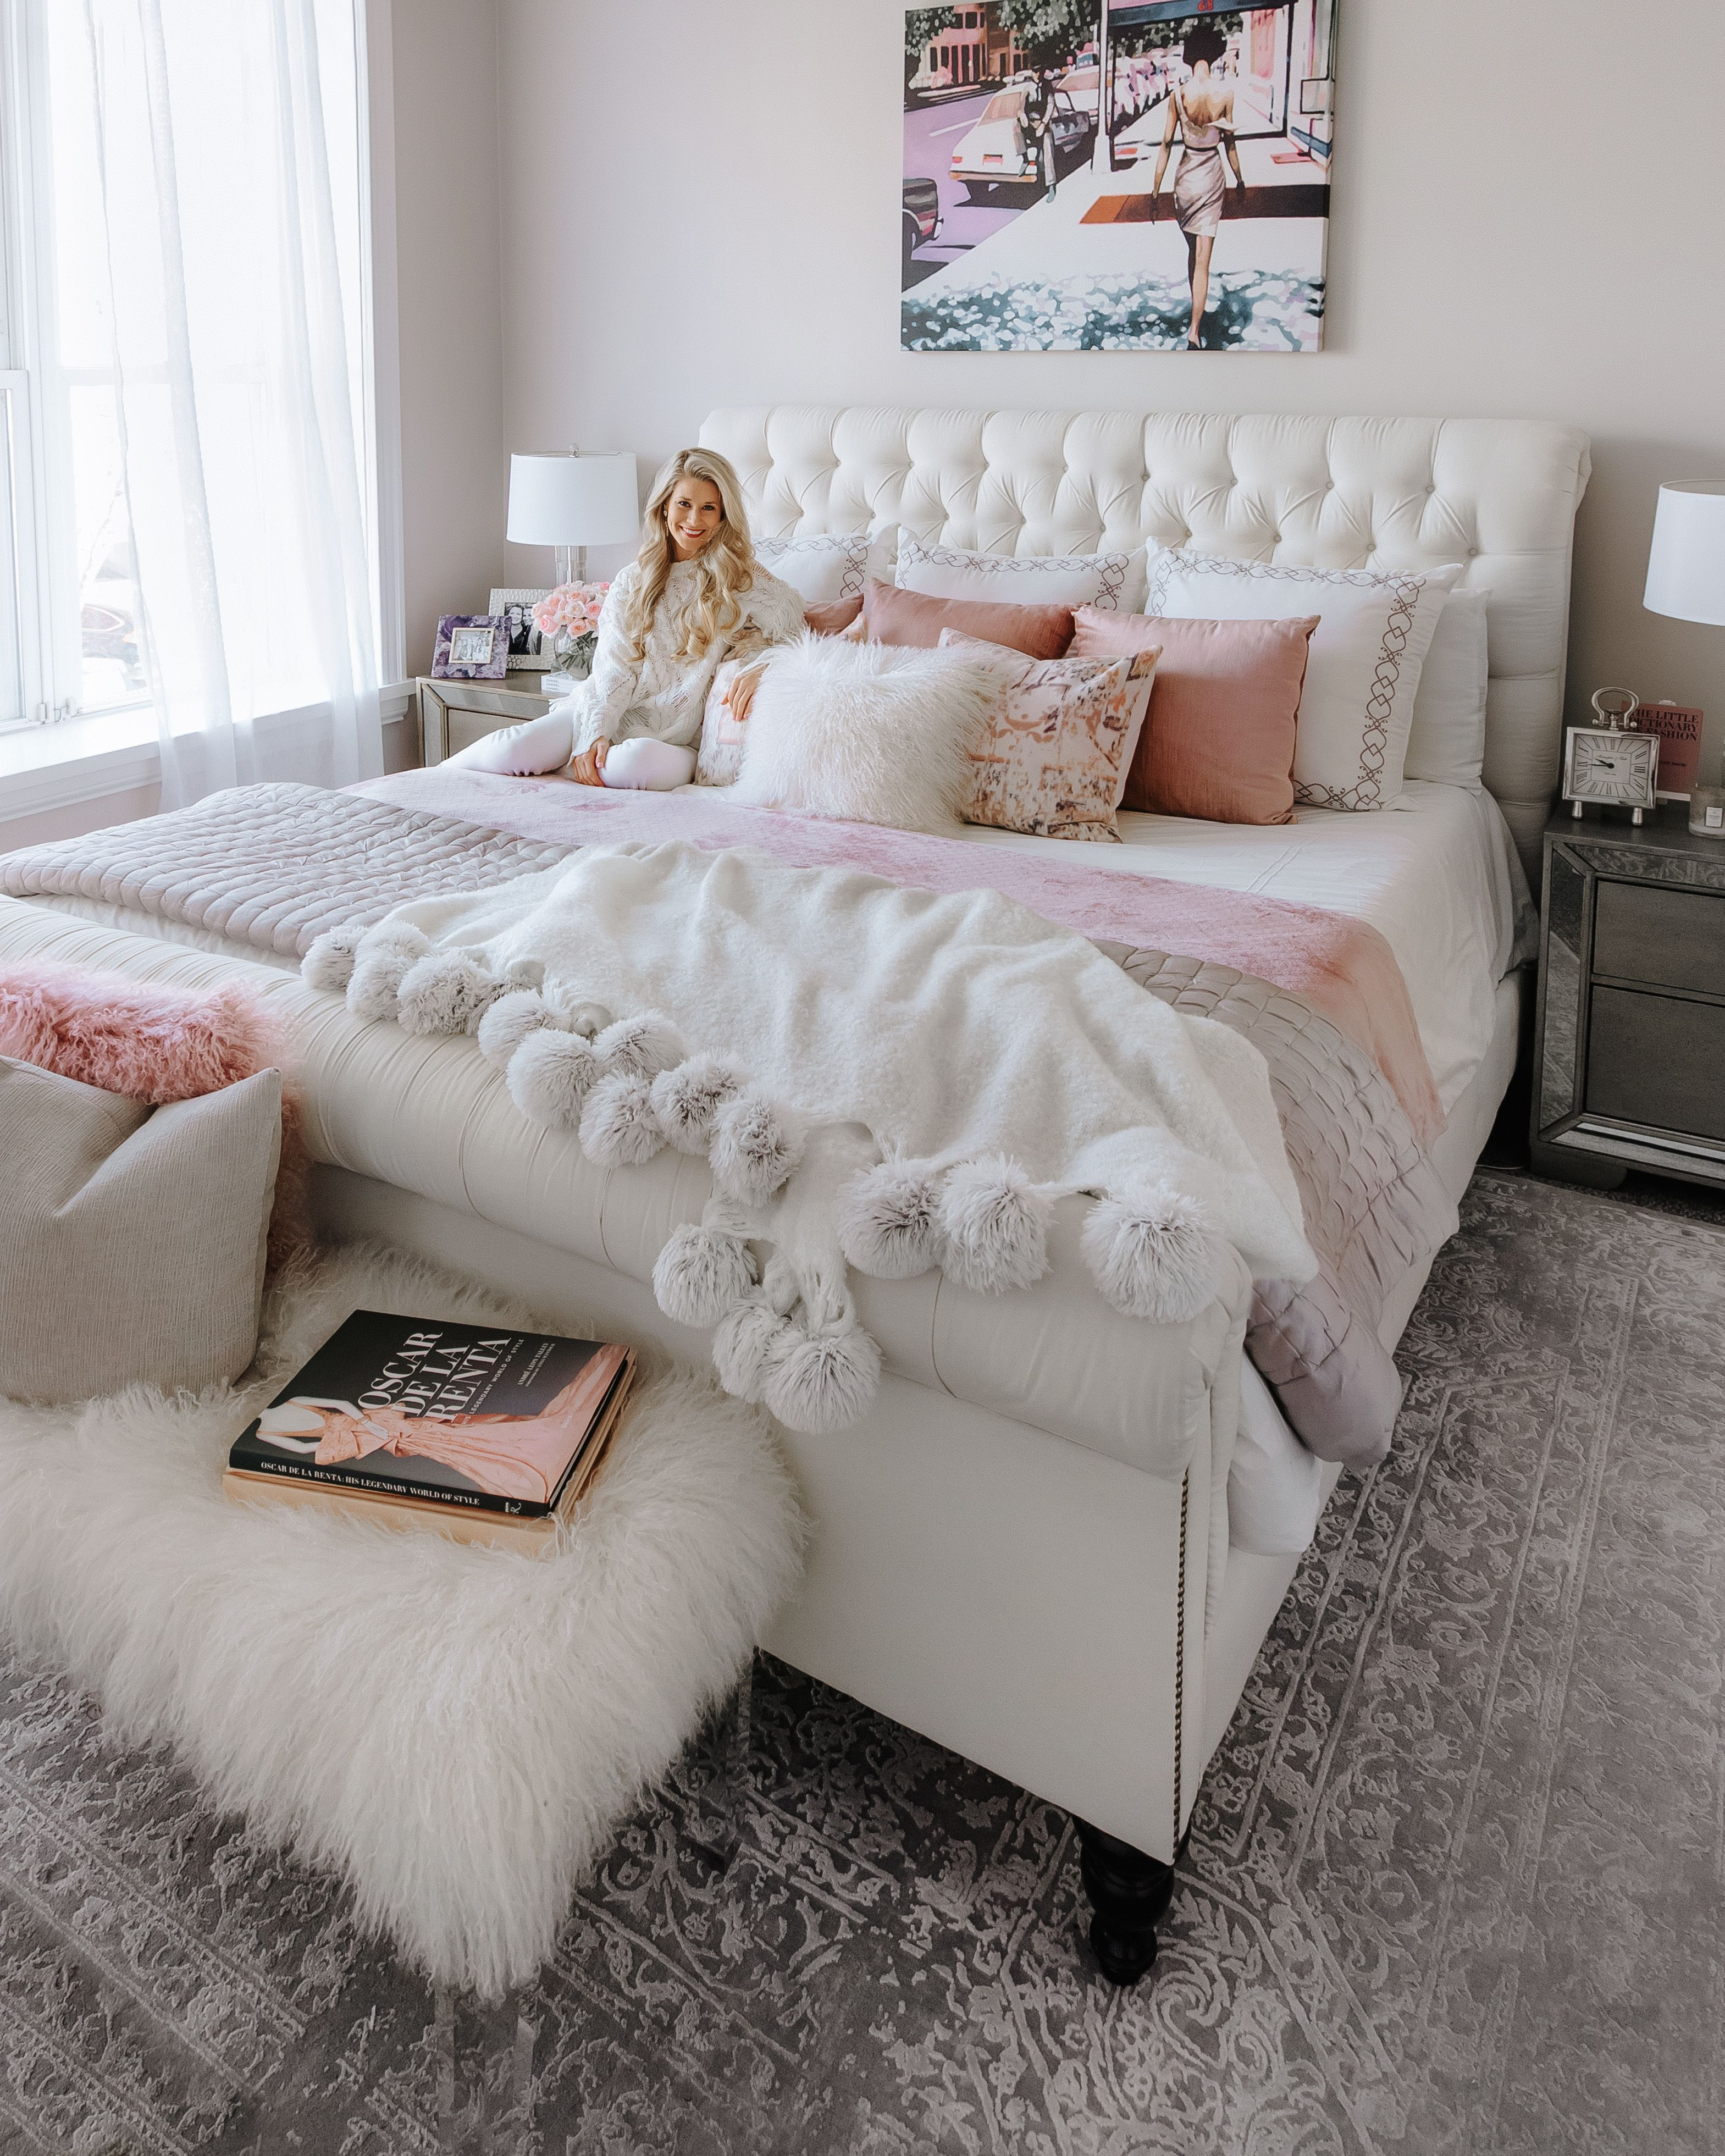 Shared Bedroom Ideas For Adults: Pink Bedroom Decor, Bedroom Decor, Cozy